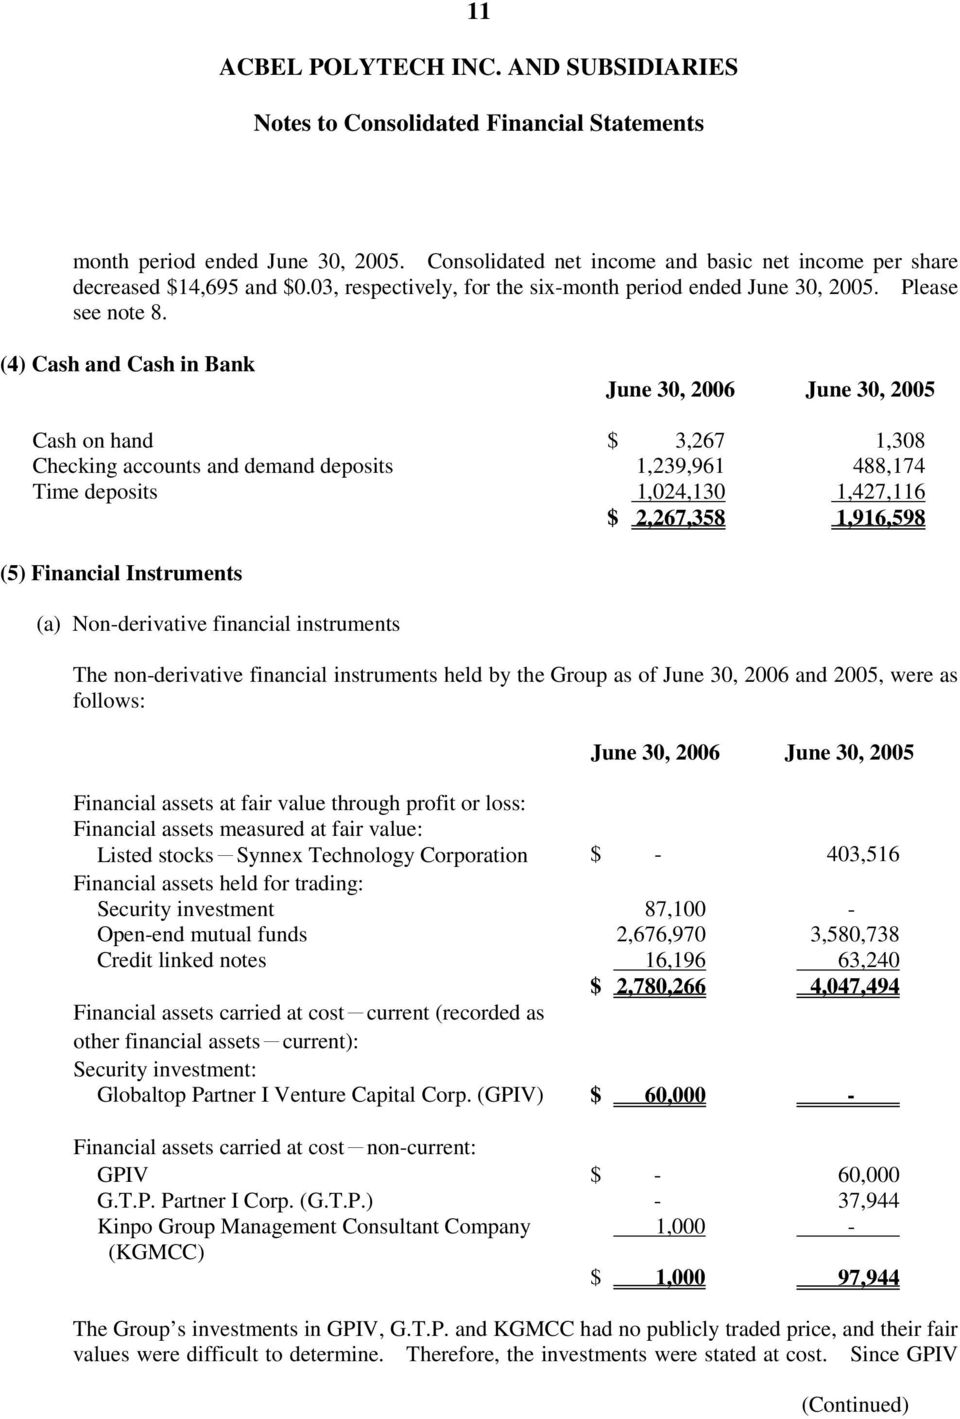 Financial Instruments (a) Non-derivative financial instruments The non-derivative financial instruments held by the Group as of June 30, 2006 and 2005, were as follows: June 30, 2006 June 30, 2005